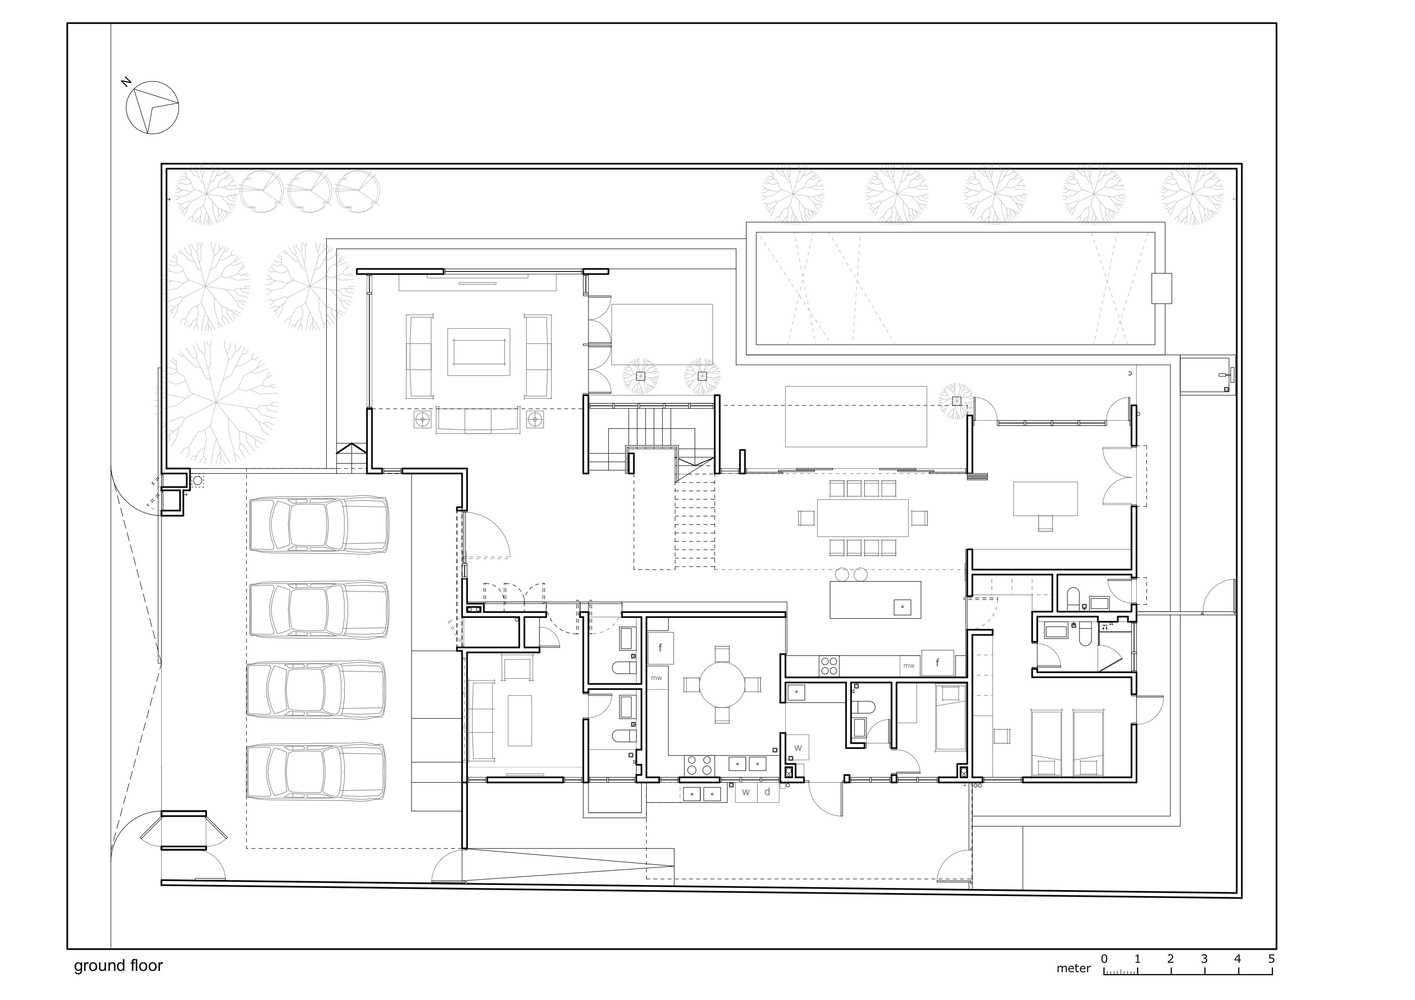 ss3__layout_plan_(without_text)__for_publication_120516.jpg (1415×1000)